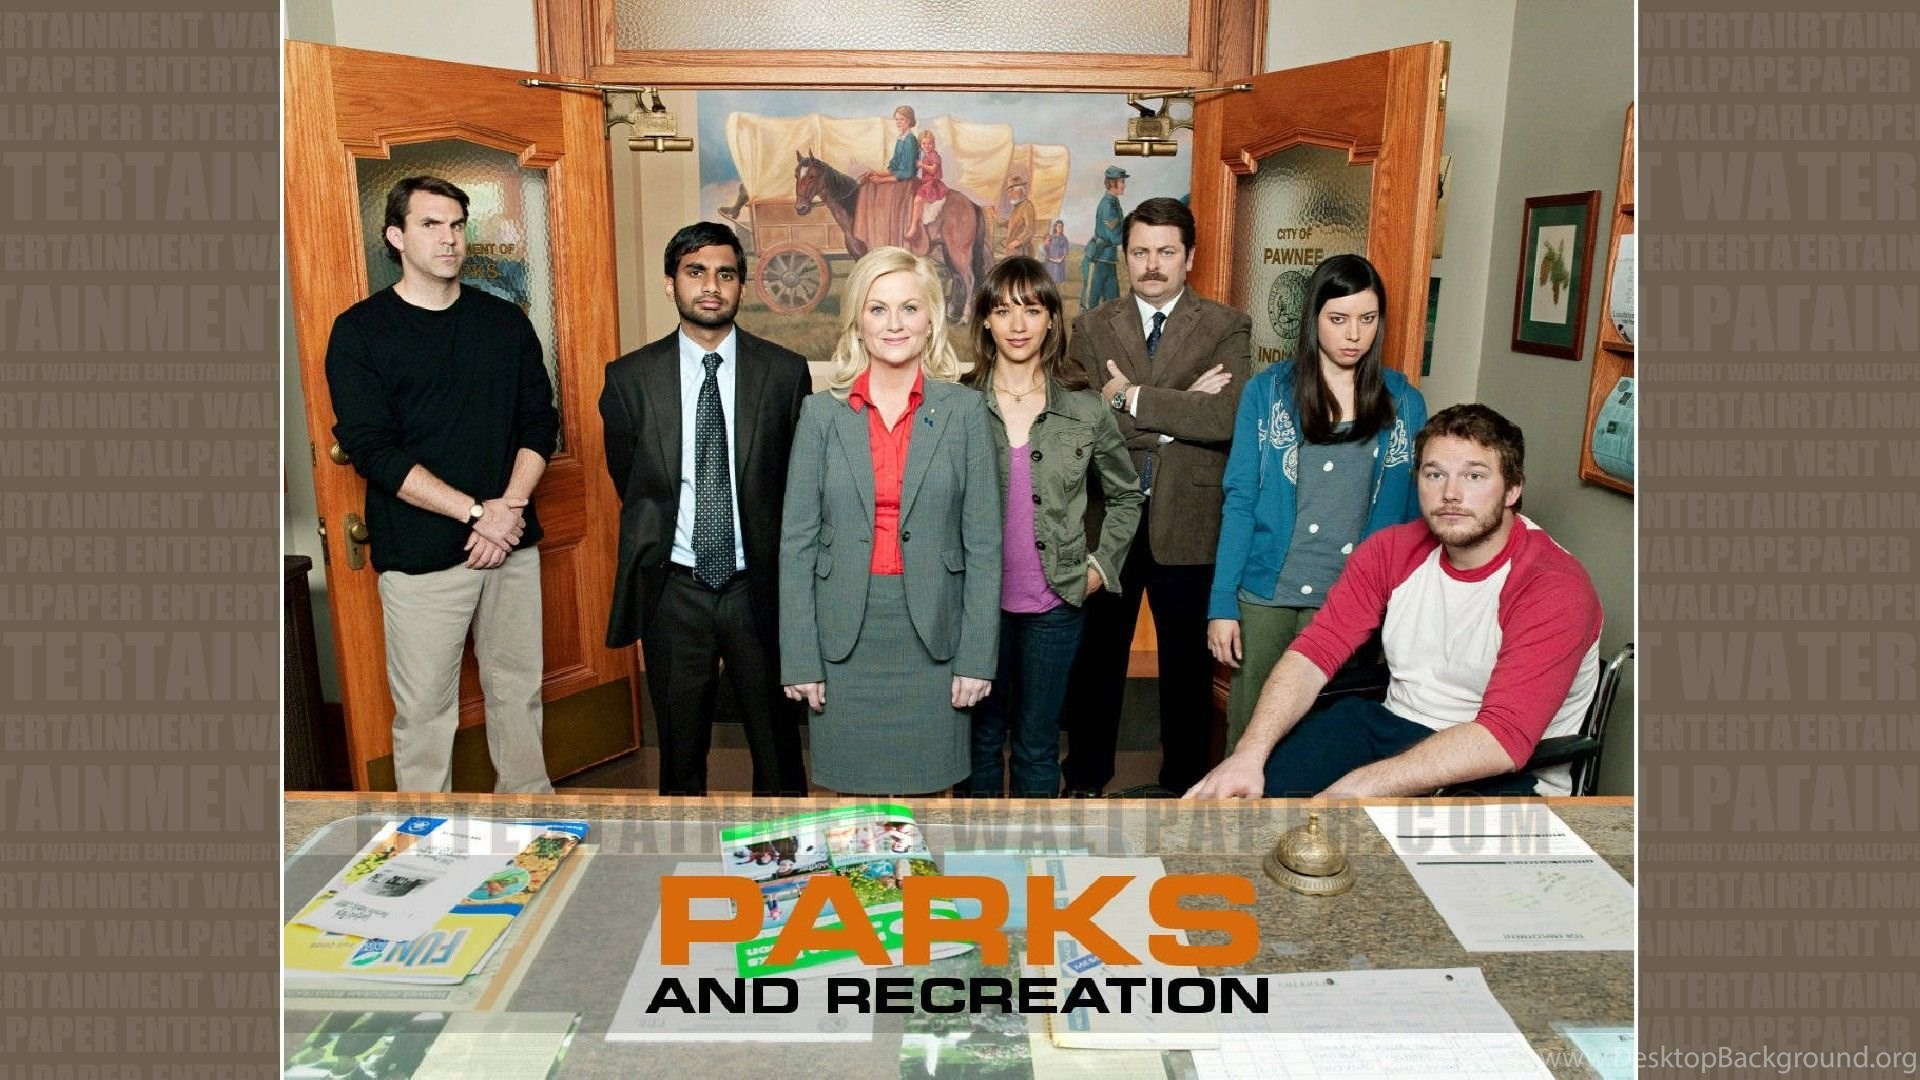 Parks And Recreation Wallpapers Desktop Background